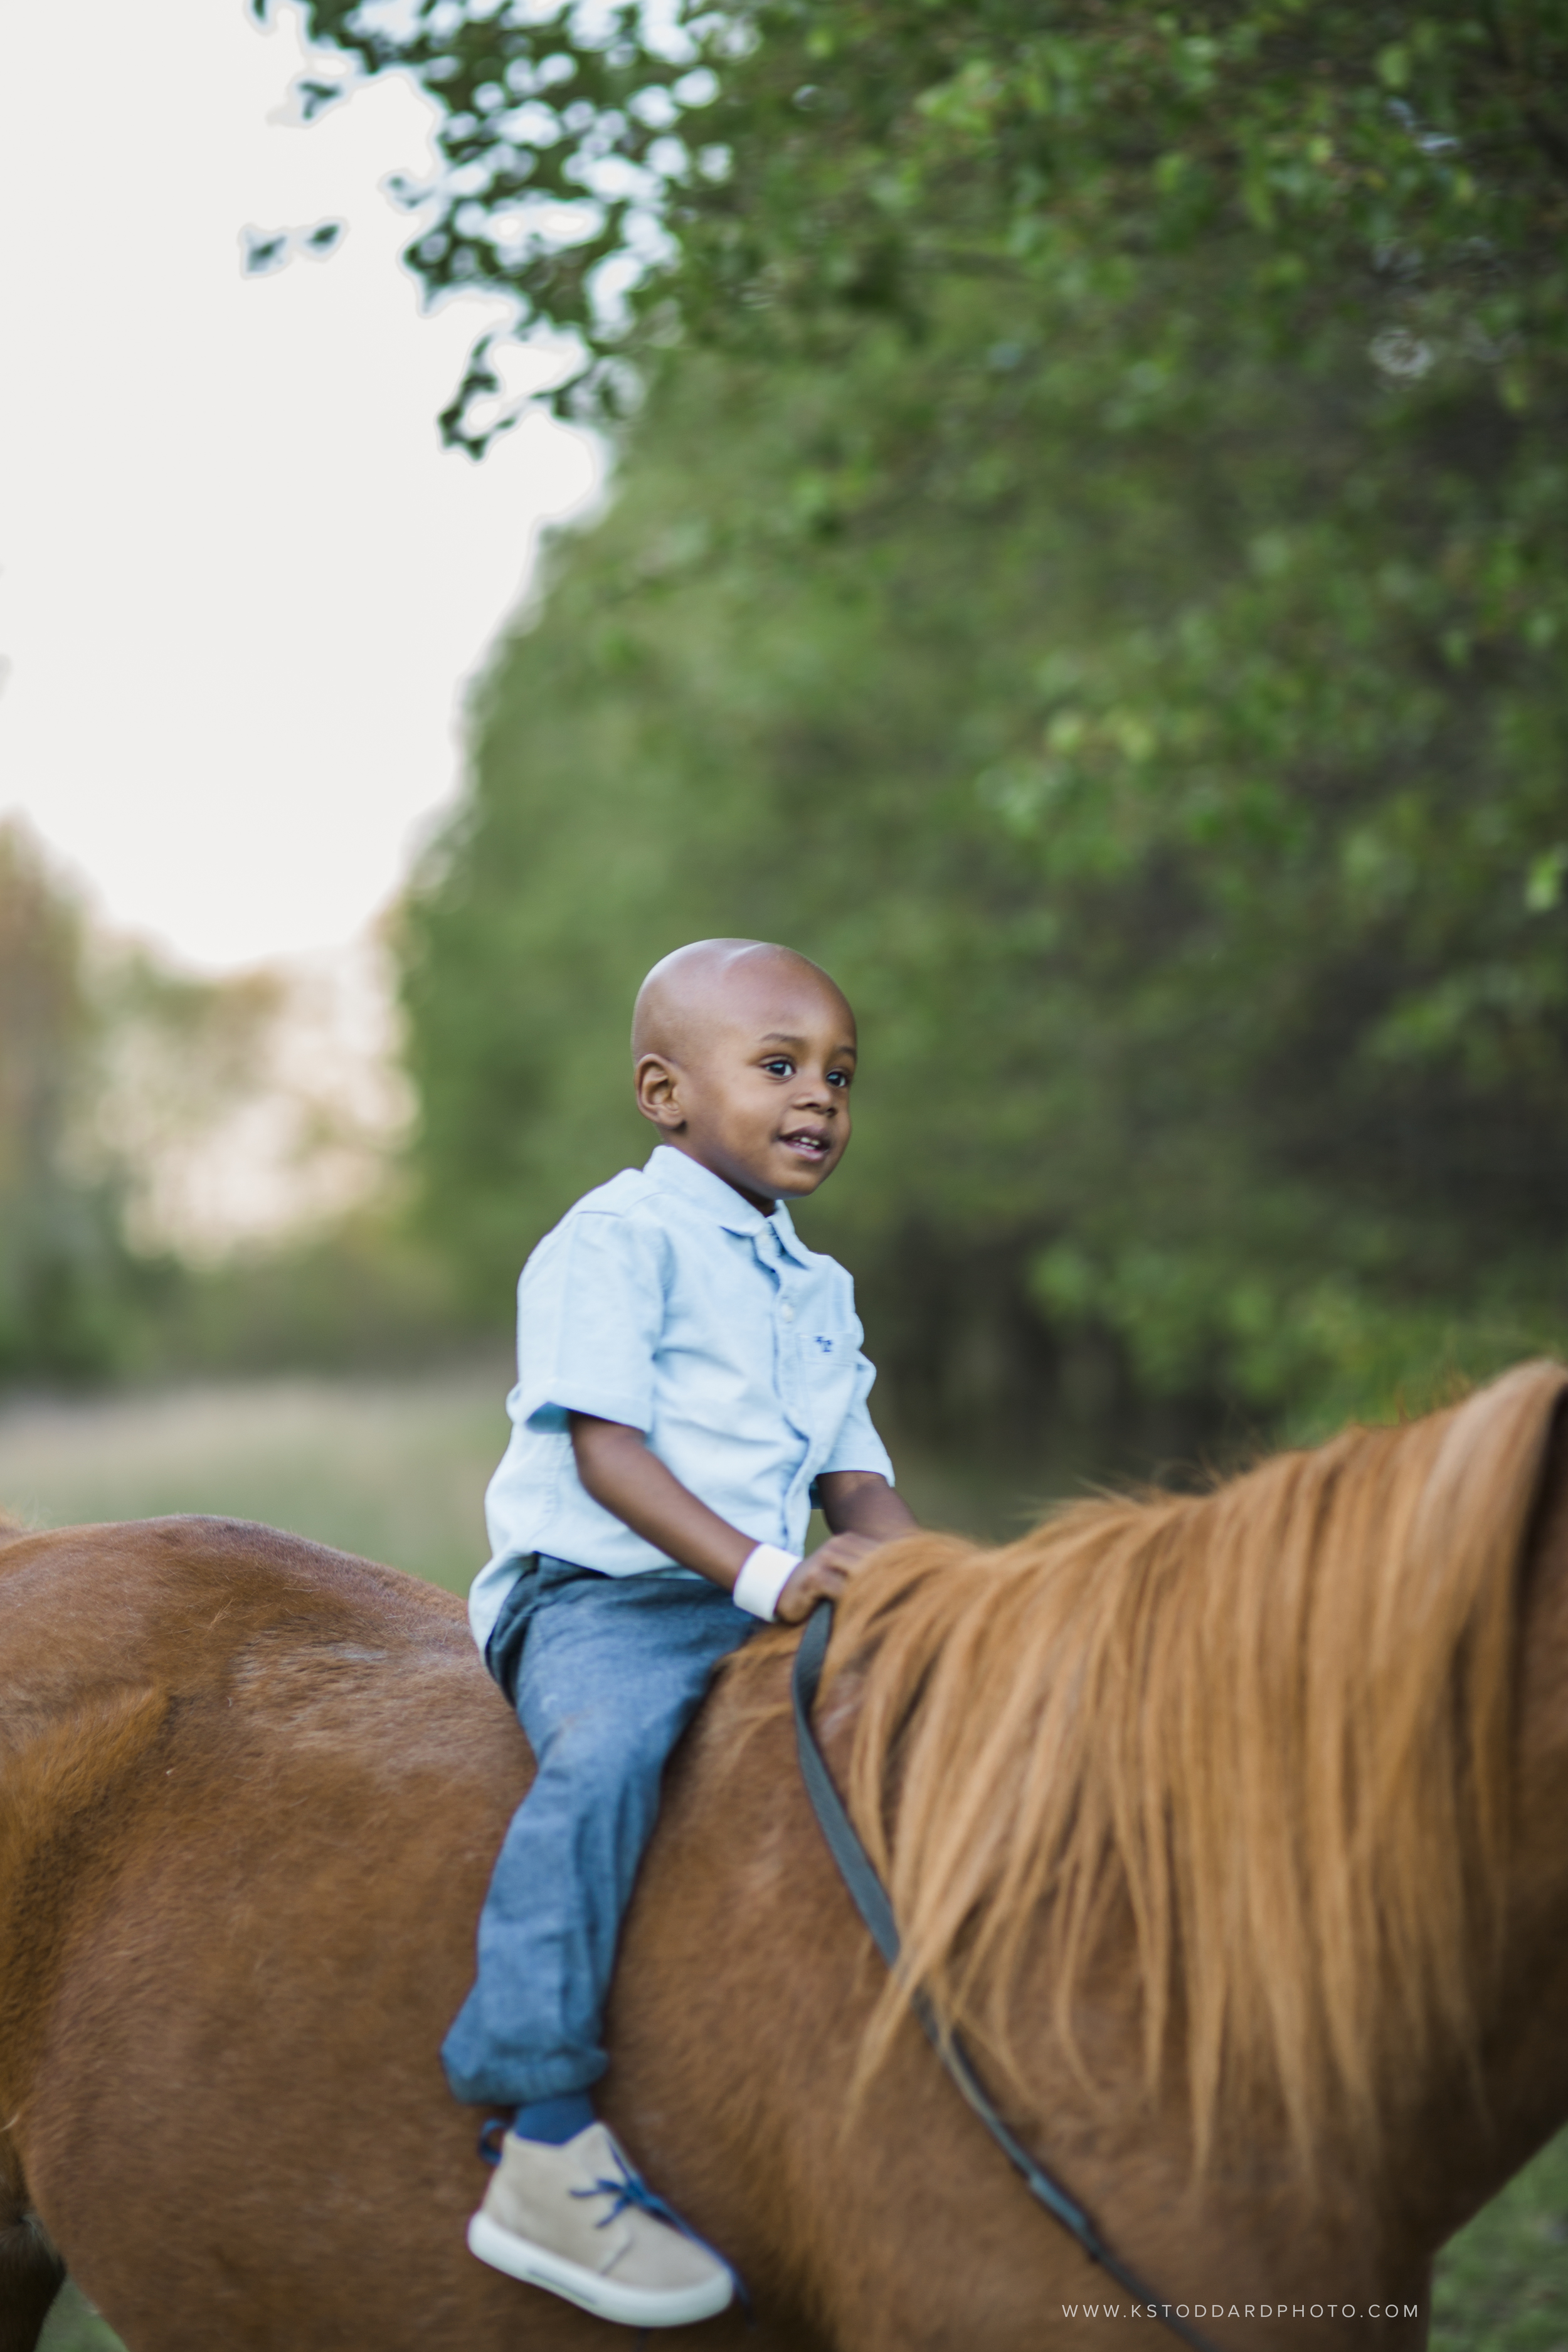 K'meil and Family - St. Jude Children's Research Hospital - Memphis - K. Stoddard Photography 032.jpg